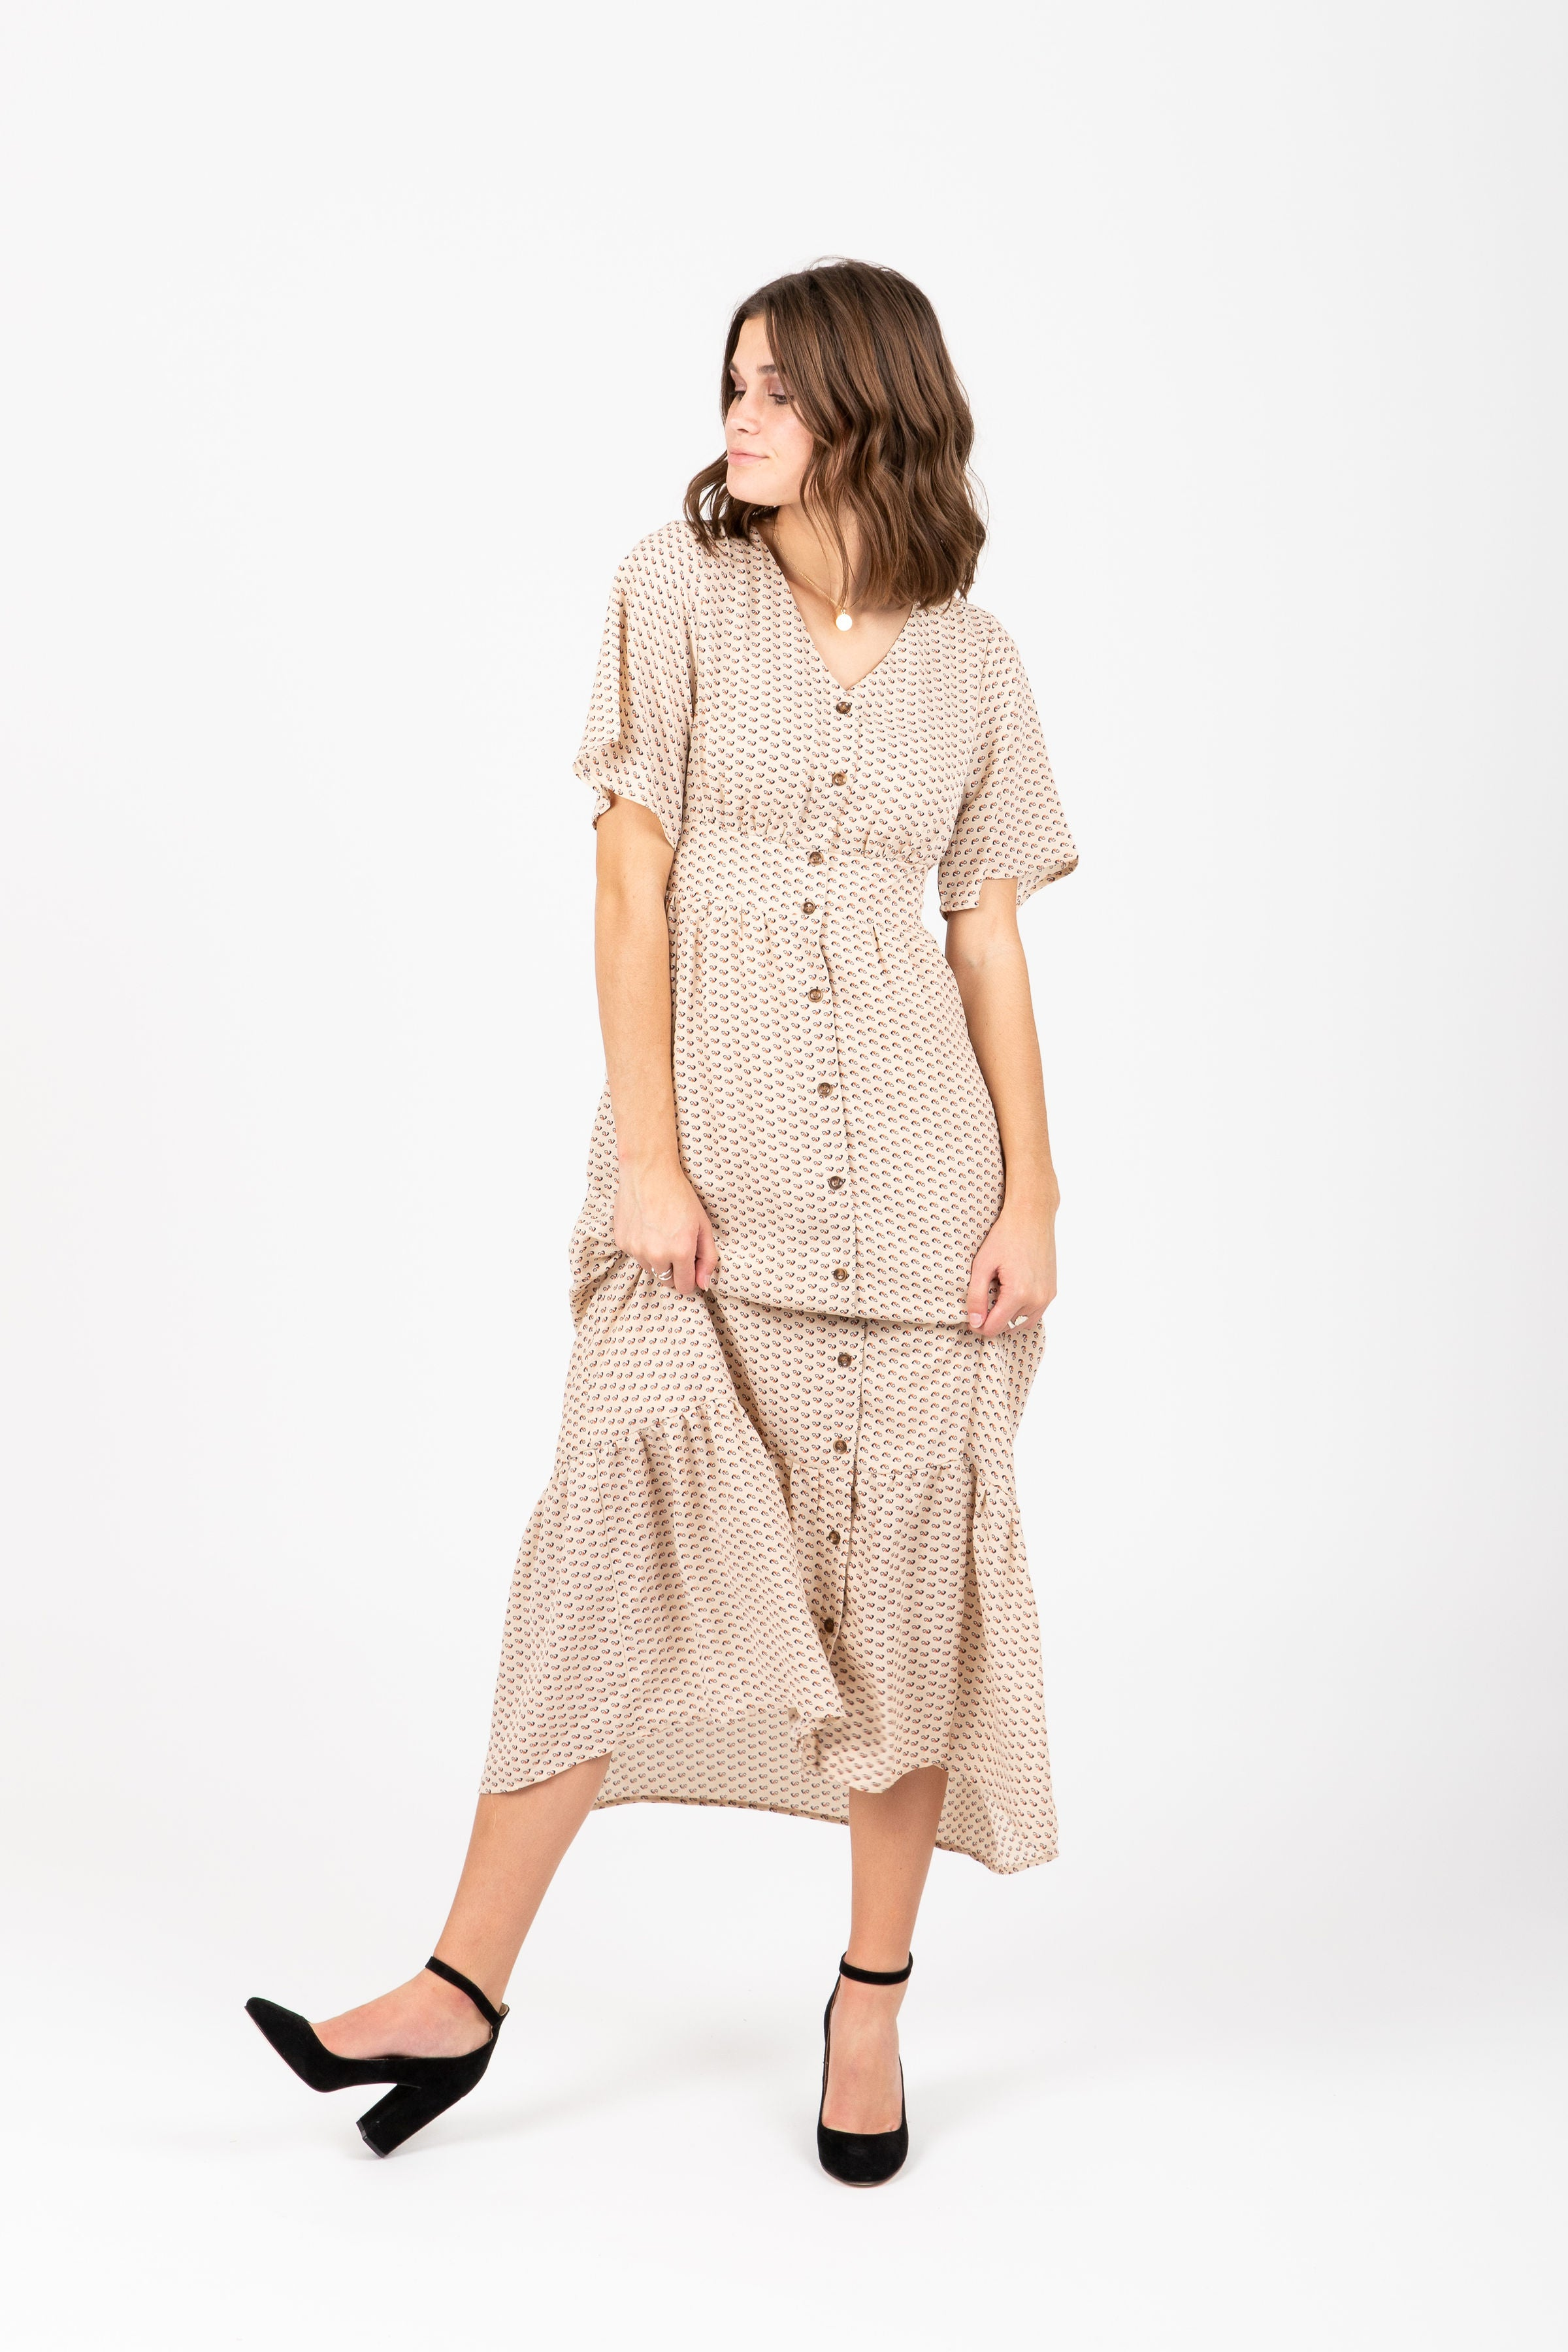 The Edison Patterned Ruffle Maxi Dress in Taupe